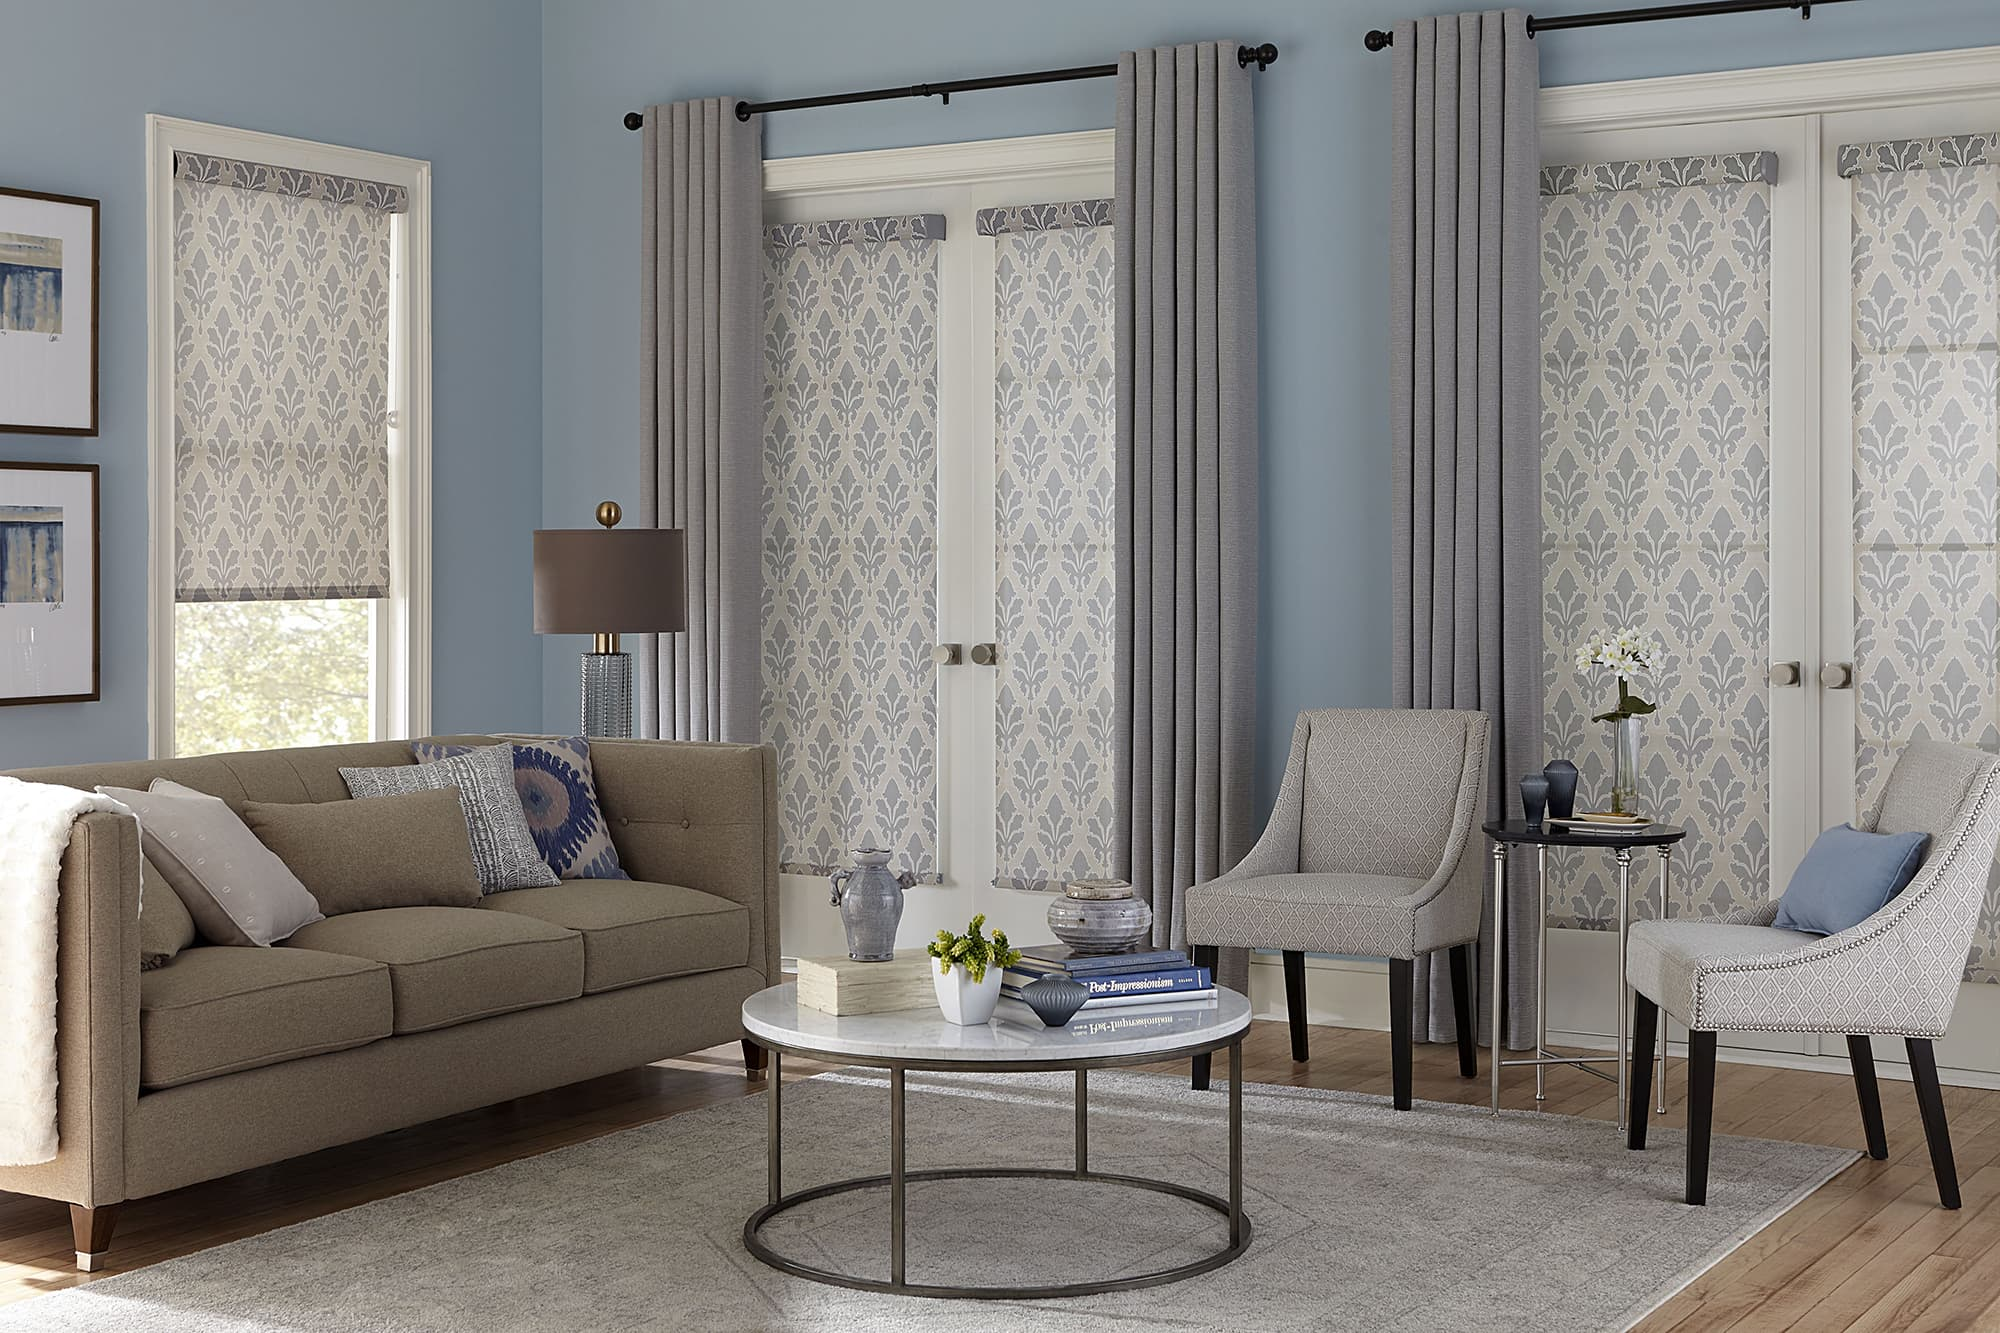 10 things you must know when buying blinds for doors the for Door window shades blinds